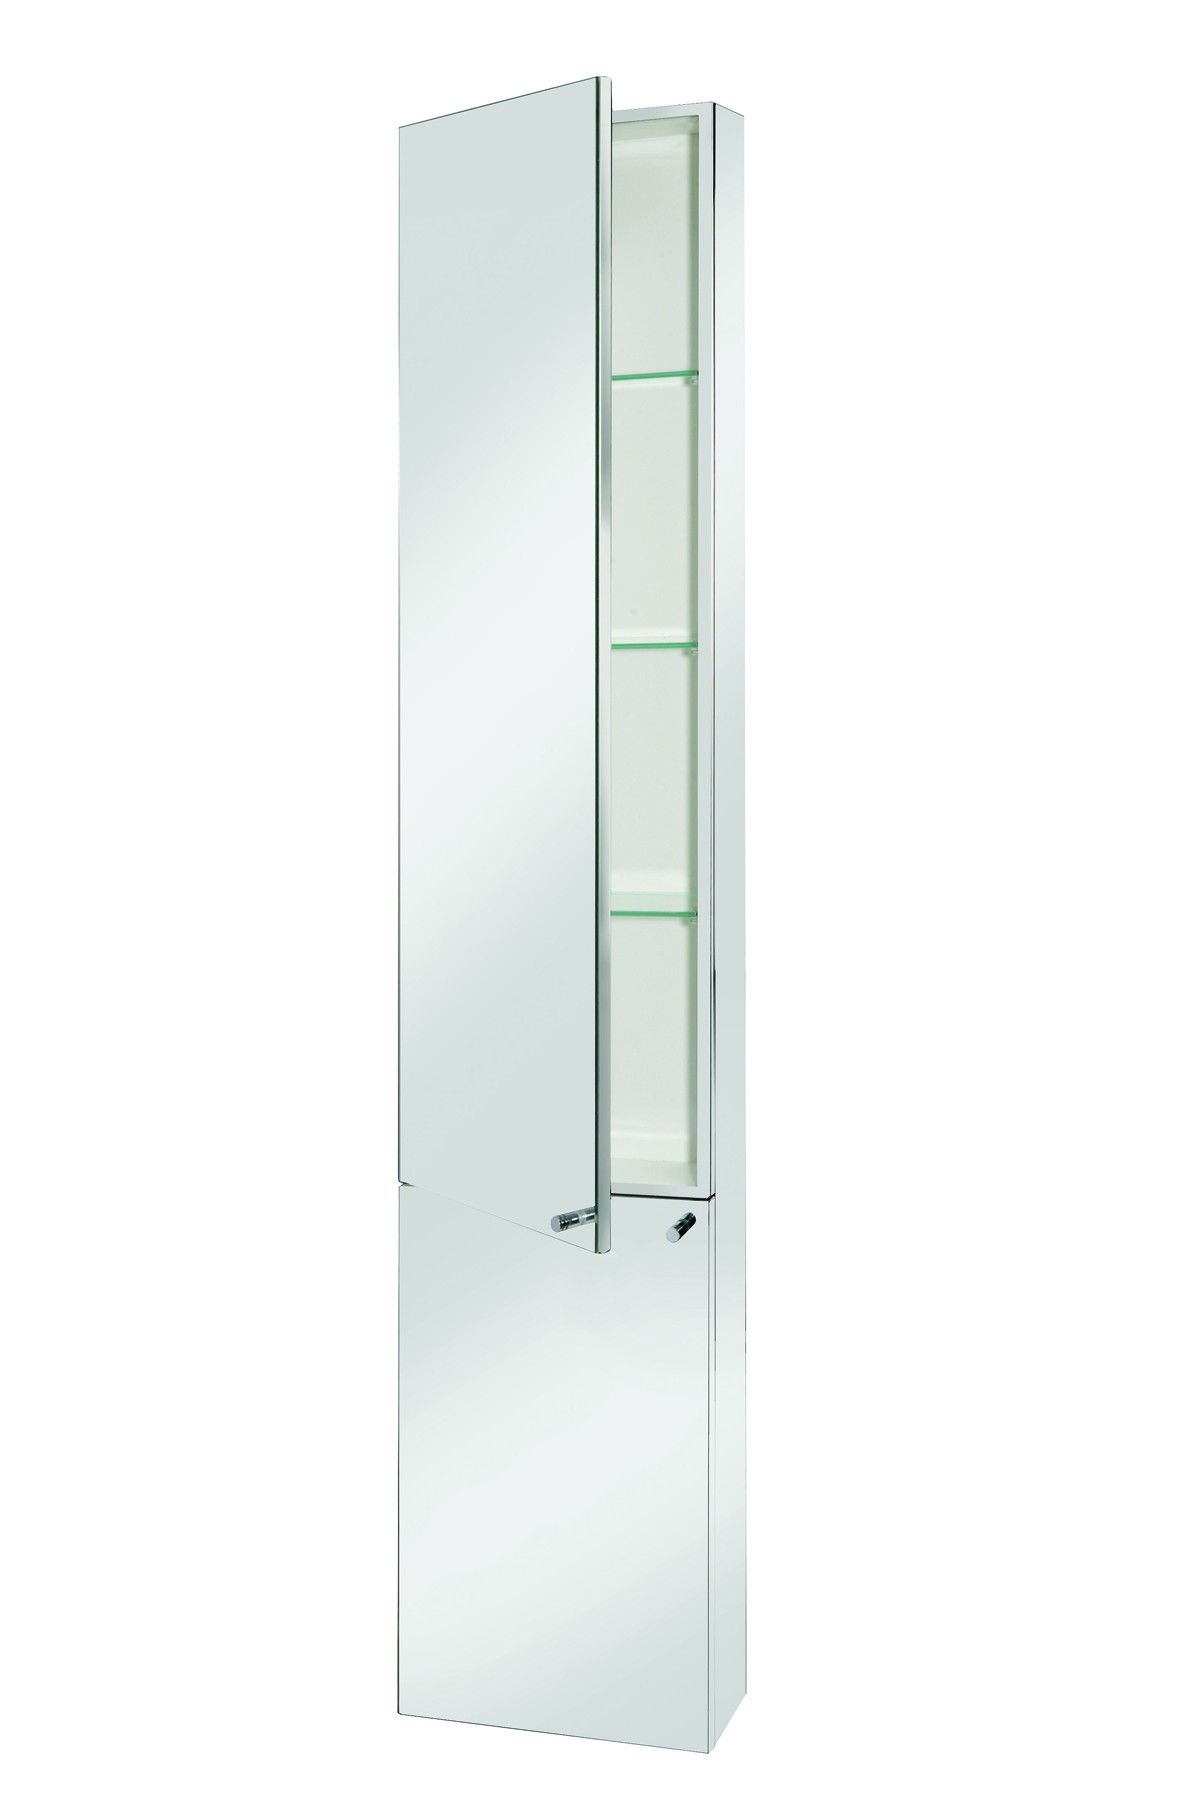 No Mirror Medicine Cabinet Croydex Wc796005 Nile Tall Mirrored Medicine Cabinet In Stainless